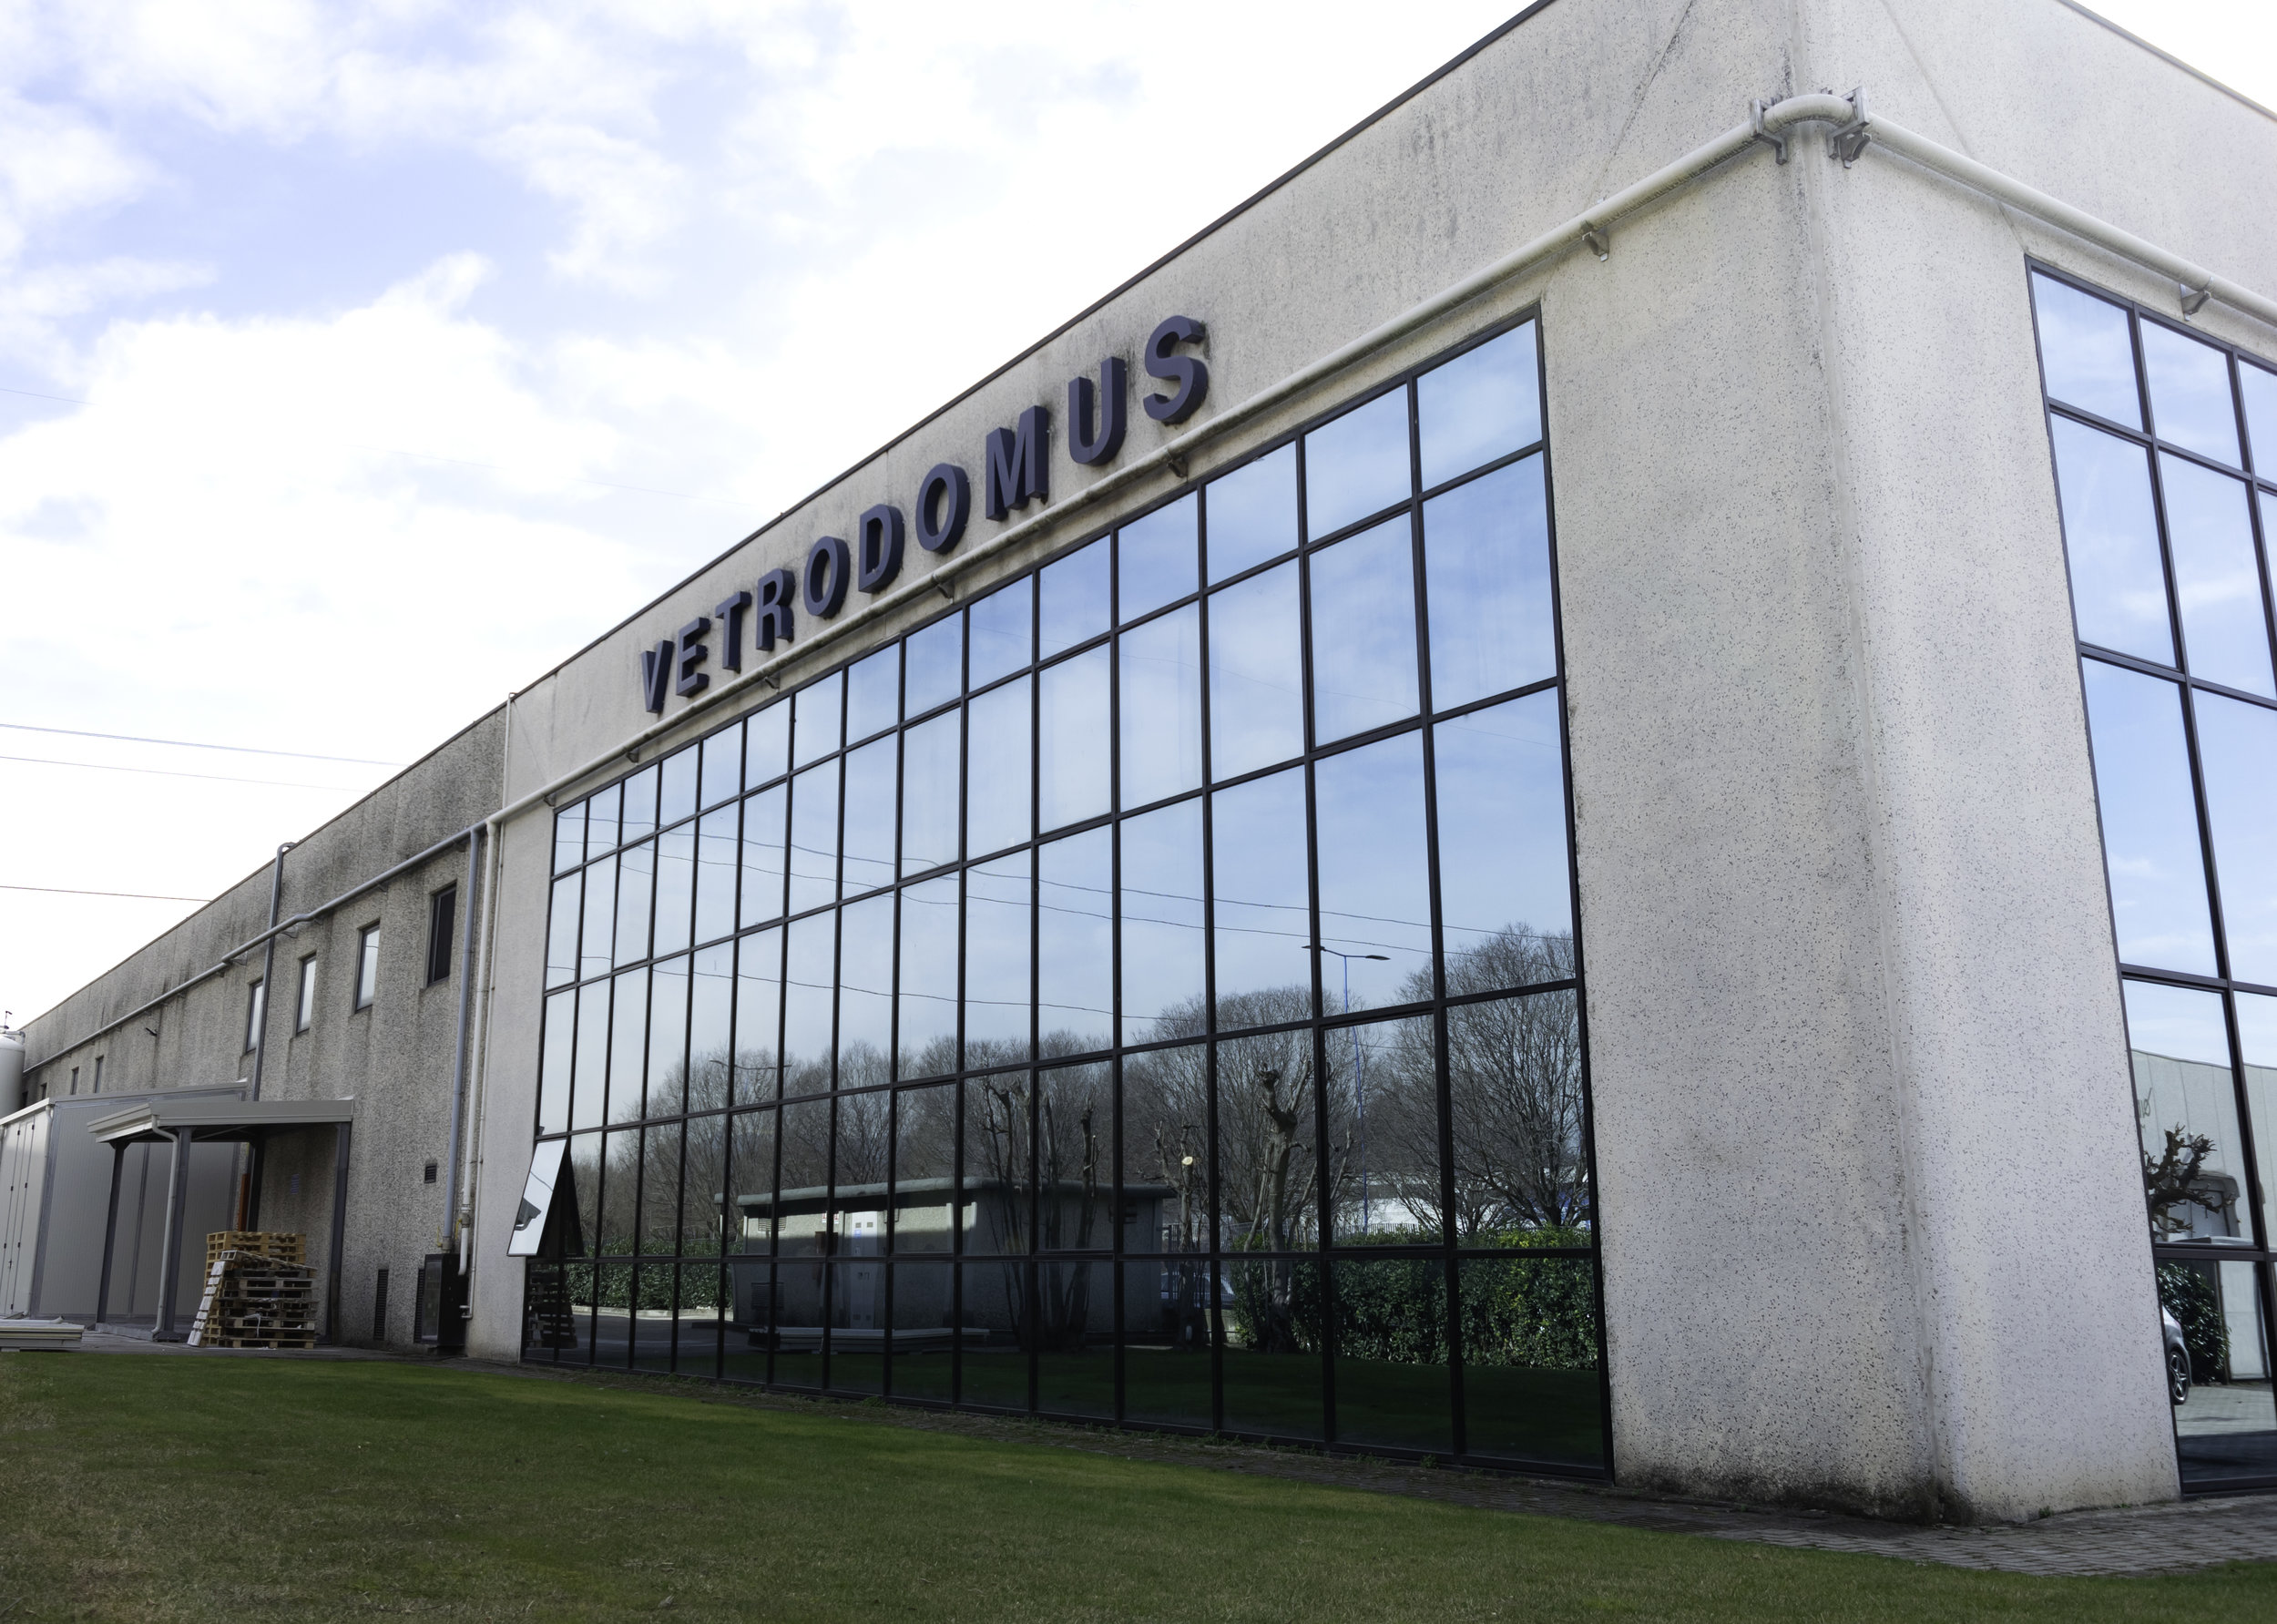 VETRODOMUS HEADQUARTERS.jpg